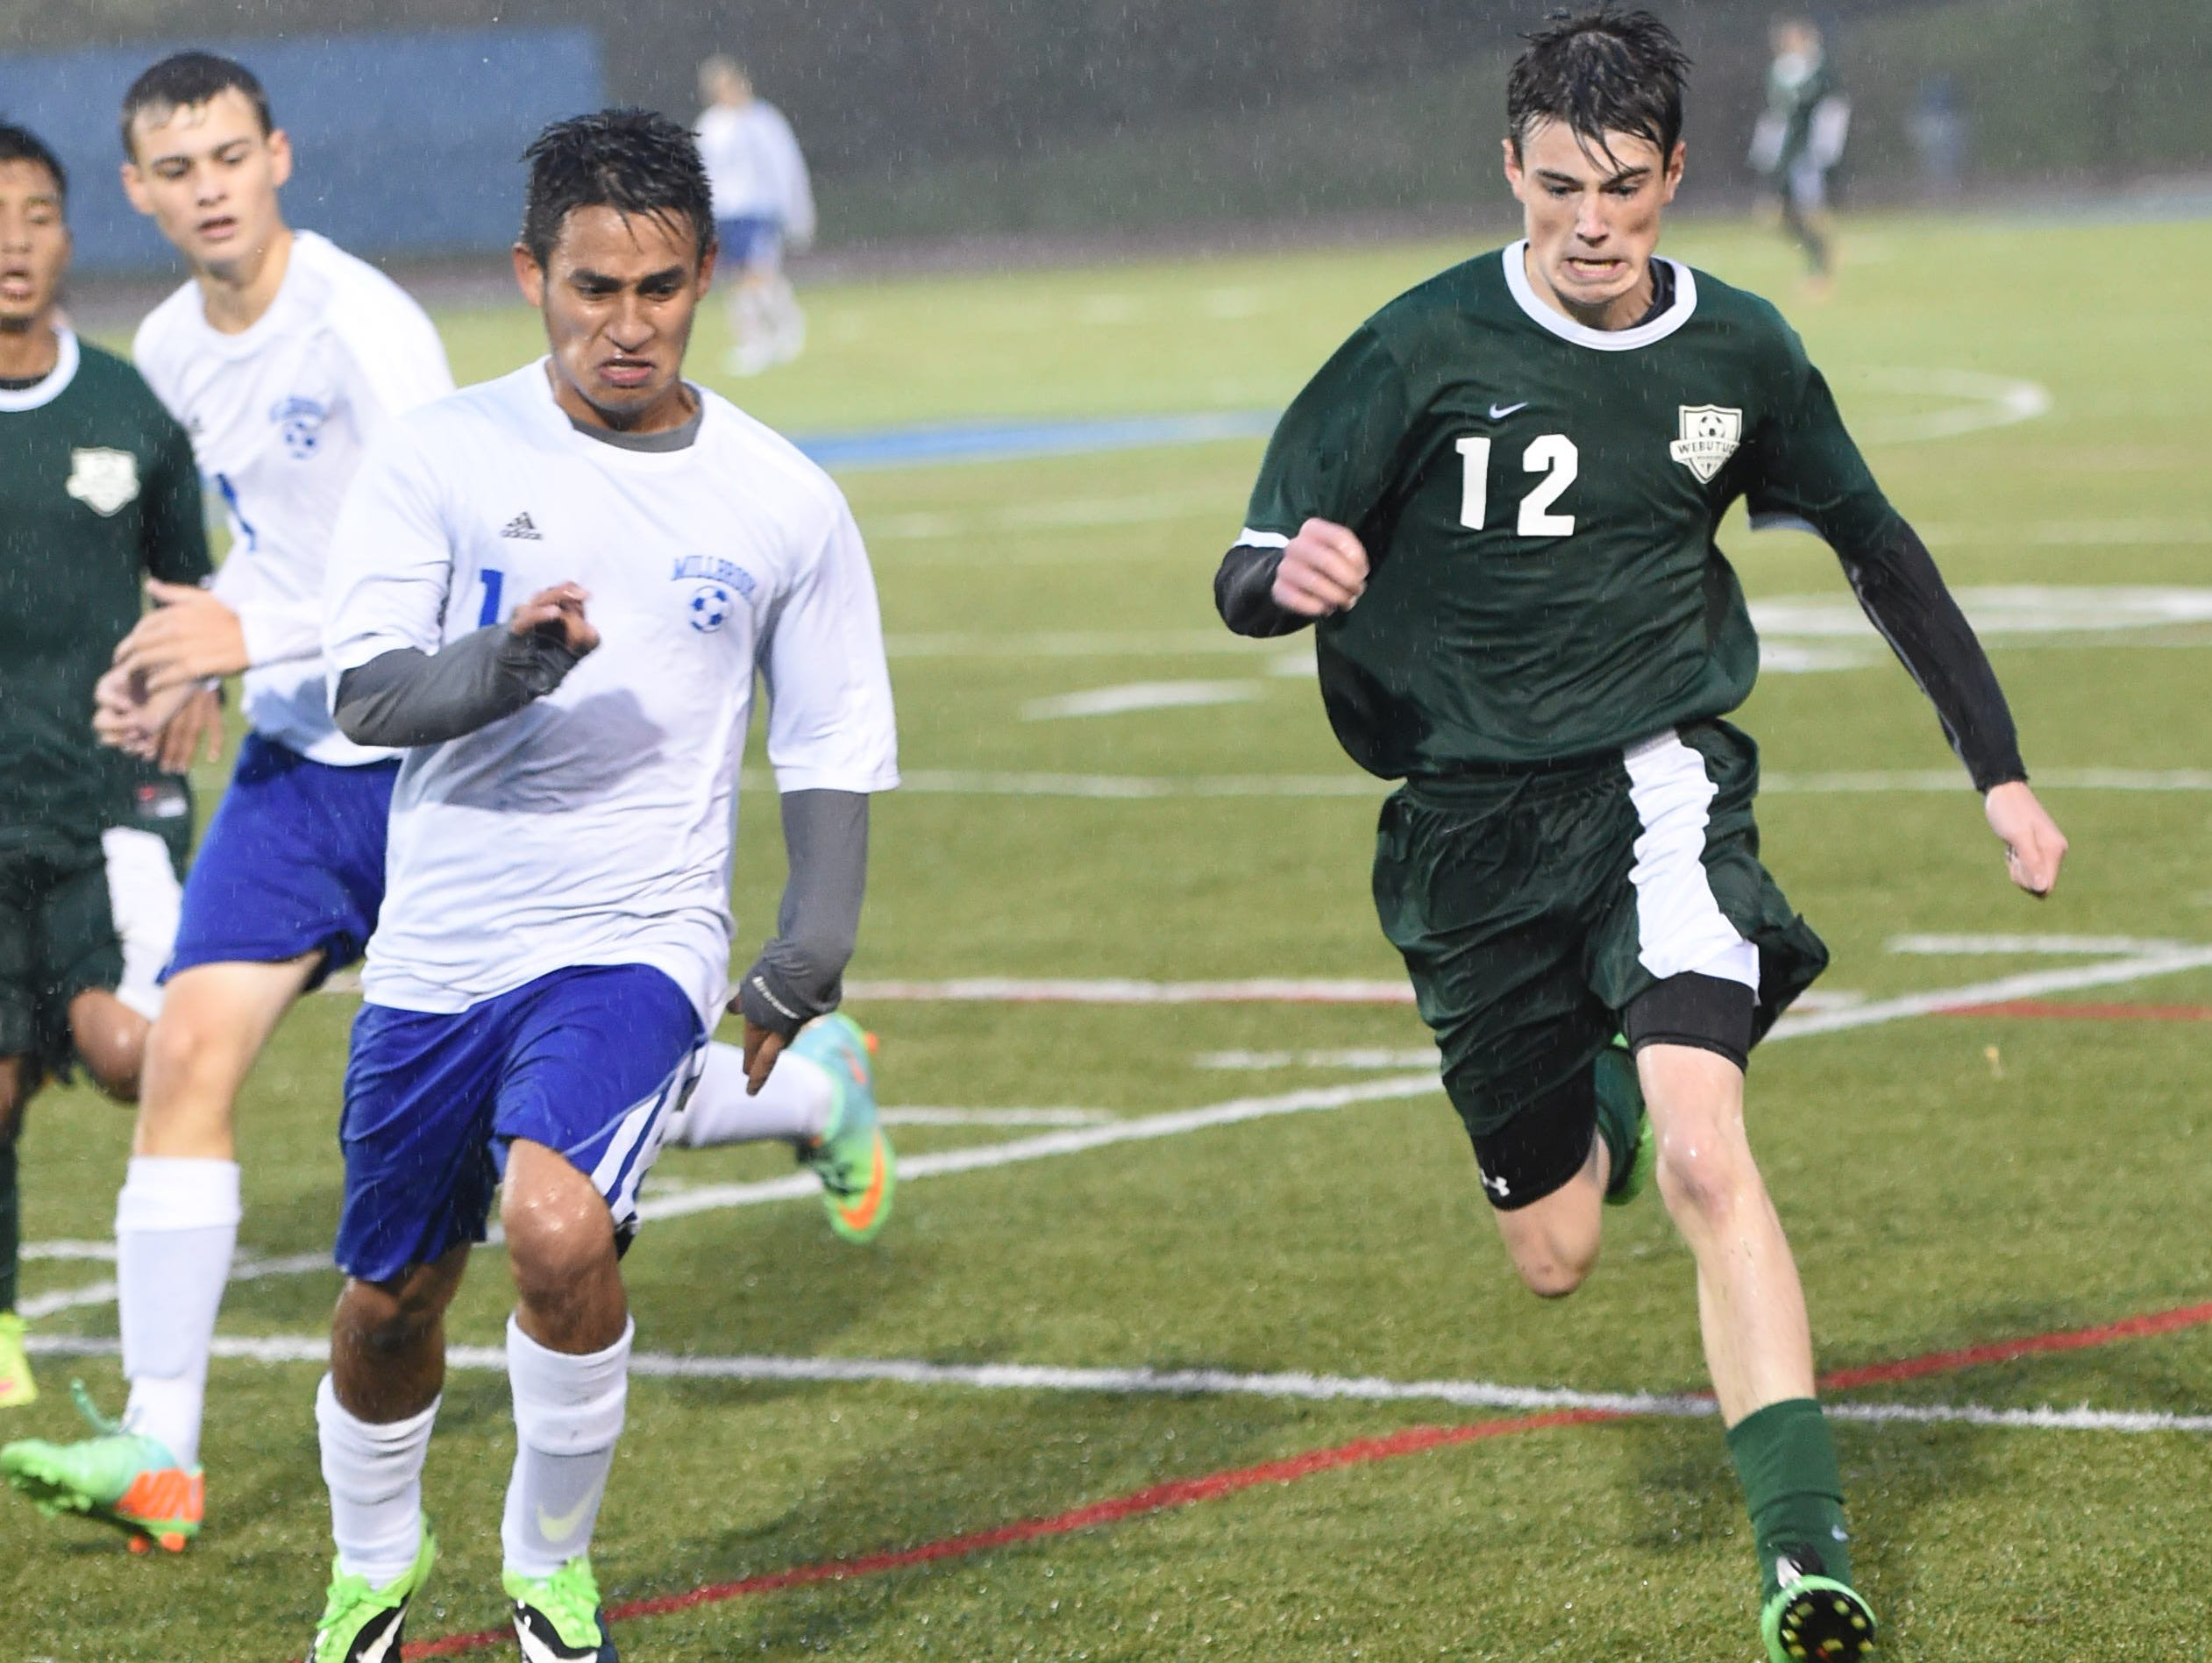 Webutuck's Deven Glover and Millbrook's Bryan Oliveros Martinez charge after the ball during the Section 9 Class C boys soccer championship on Wednesday.